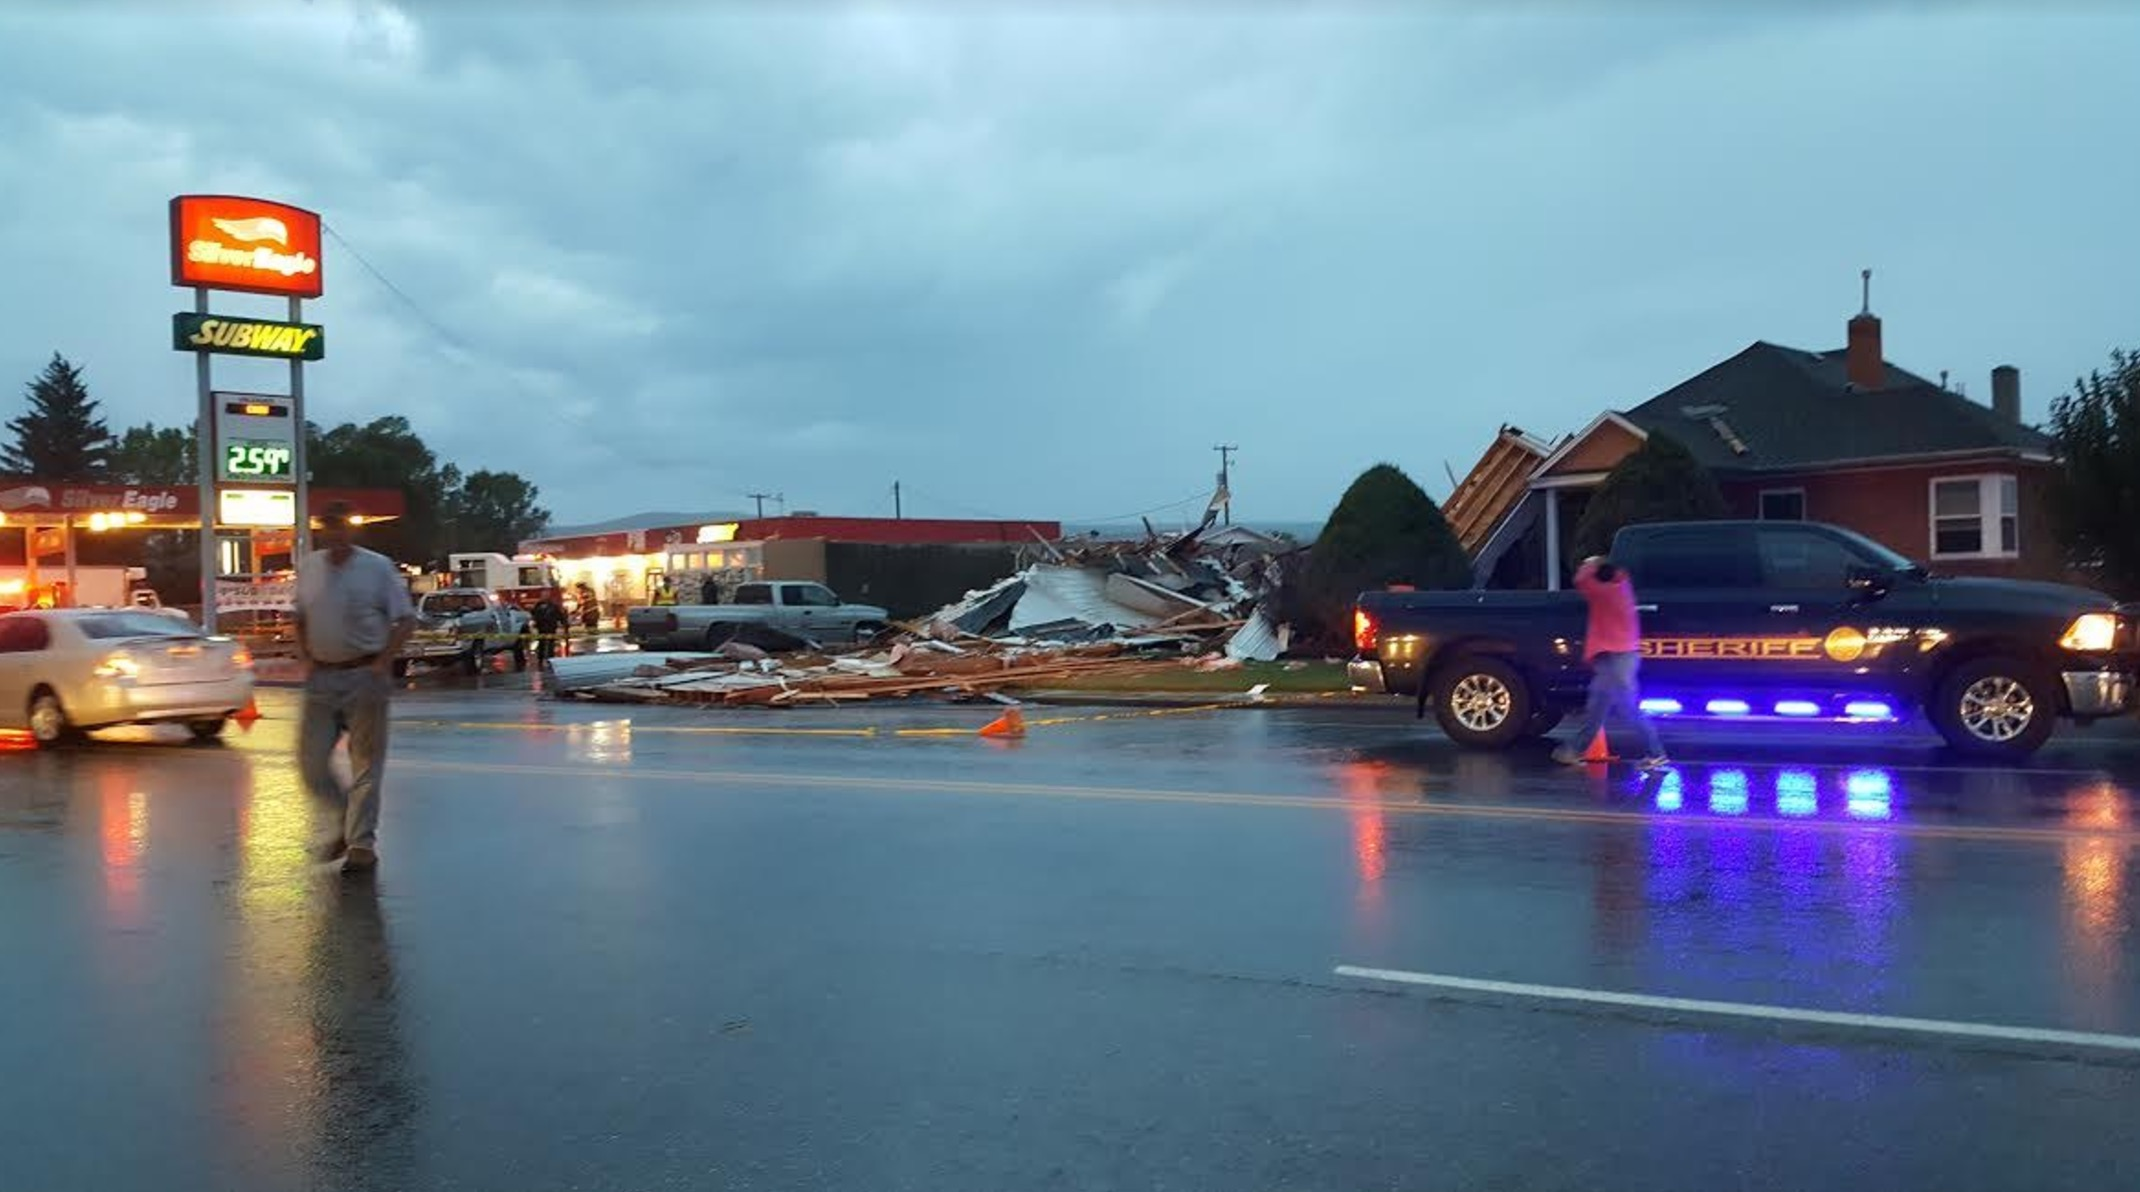 Tornado touches down in Weber County as wild weather roars through